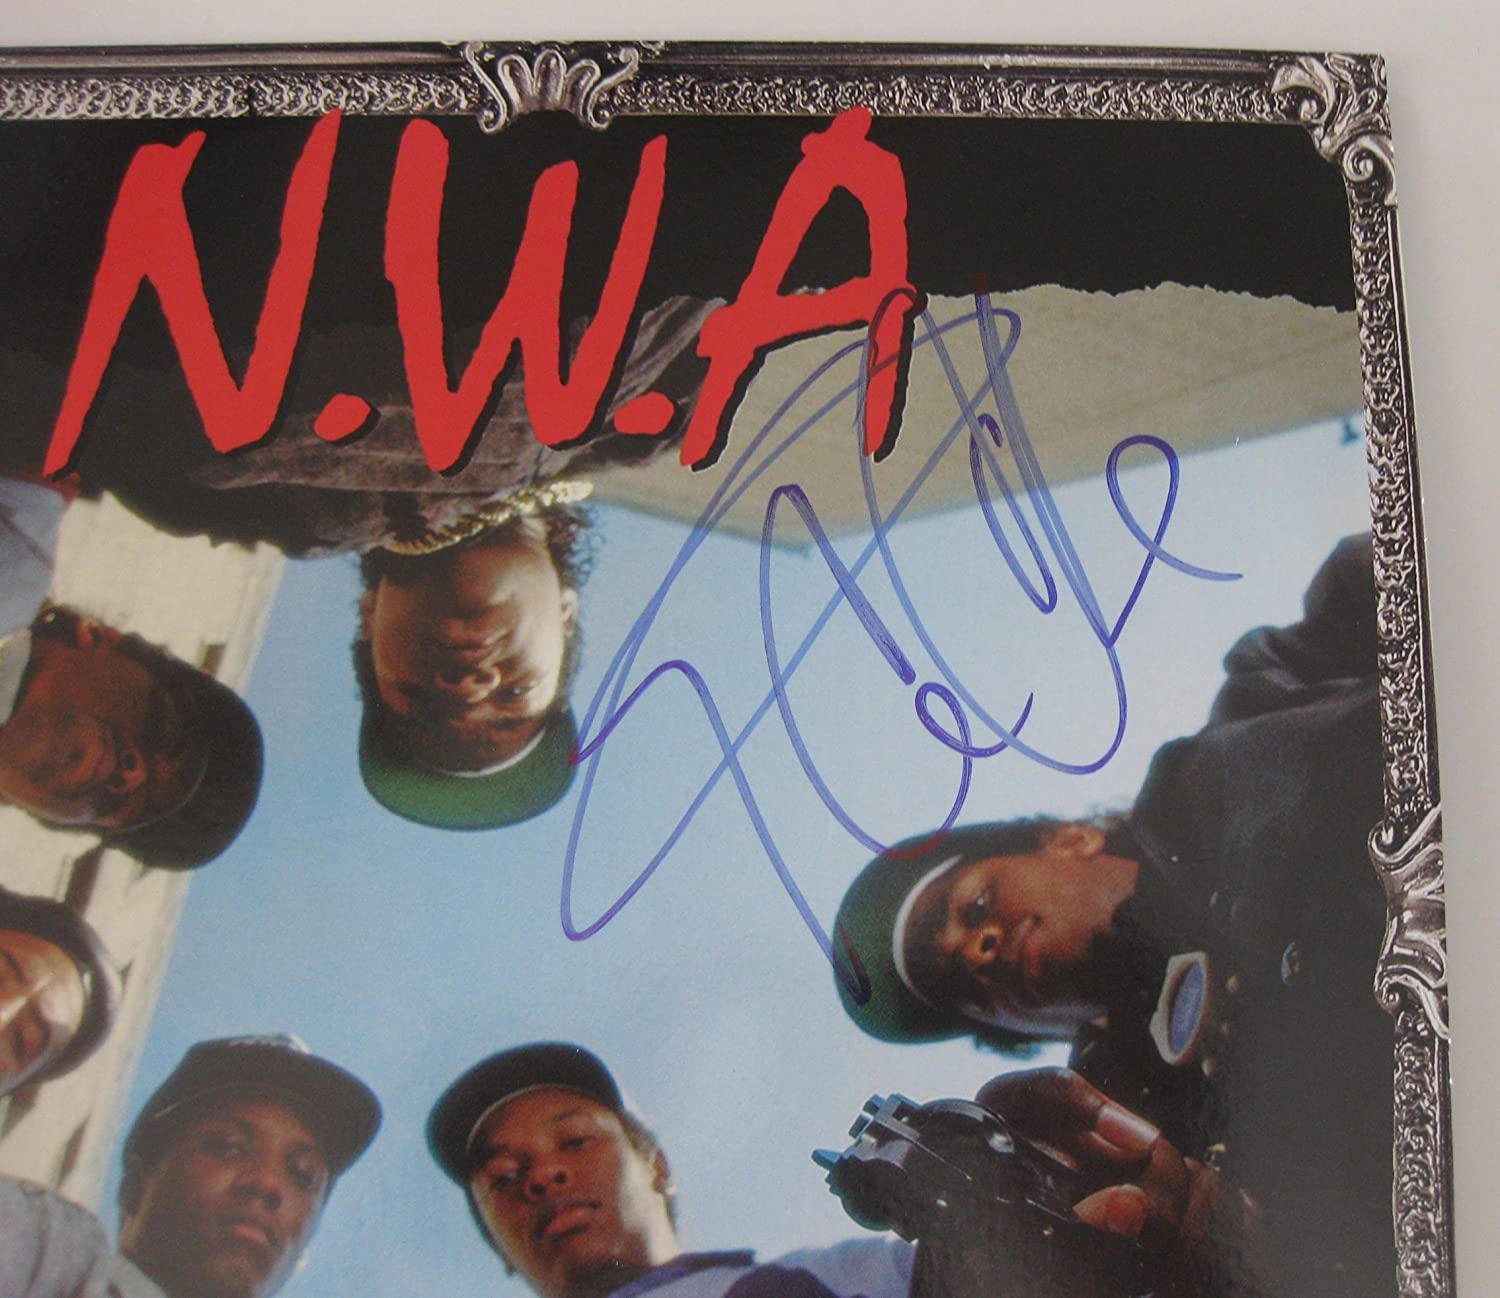 Ice cube signed autographed nwa straight outta compton ice cube signed autographed nwa straight outta compton vinyl album a coa with the proof photo will be includedar at amazons sports collectibles 1betcityfo Images